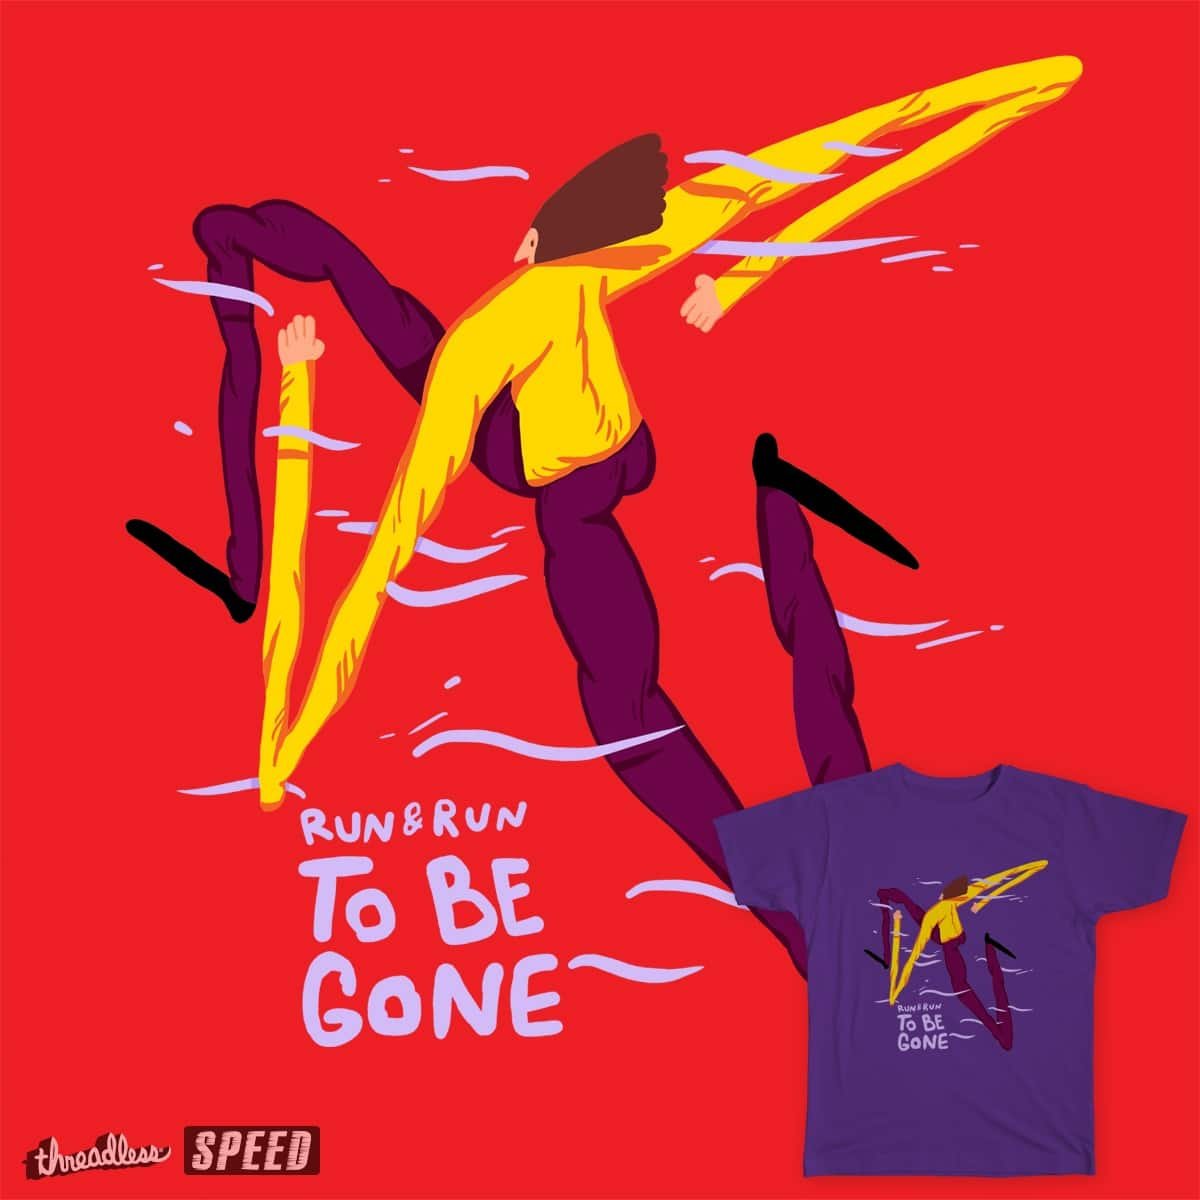 Run & run, to be gone on Threadless